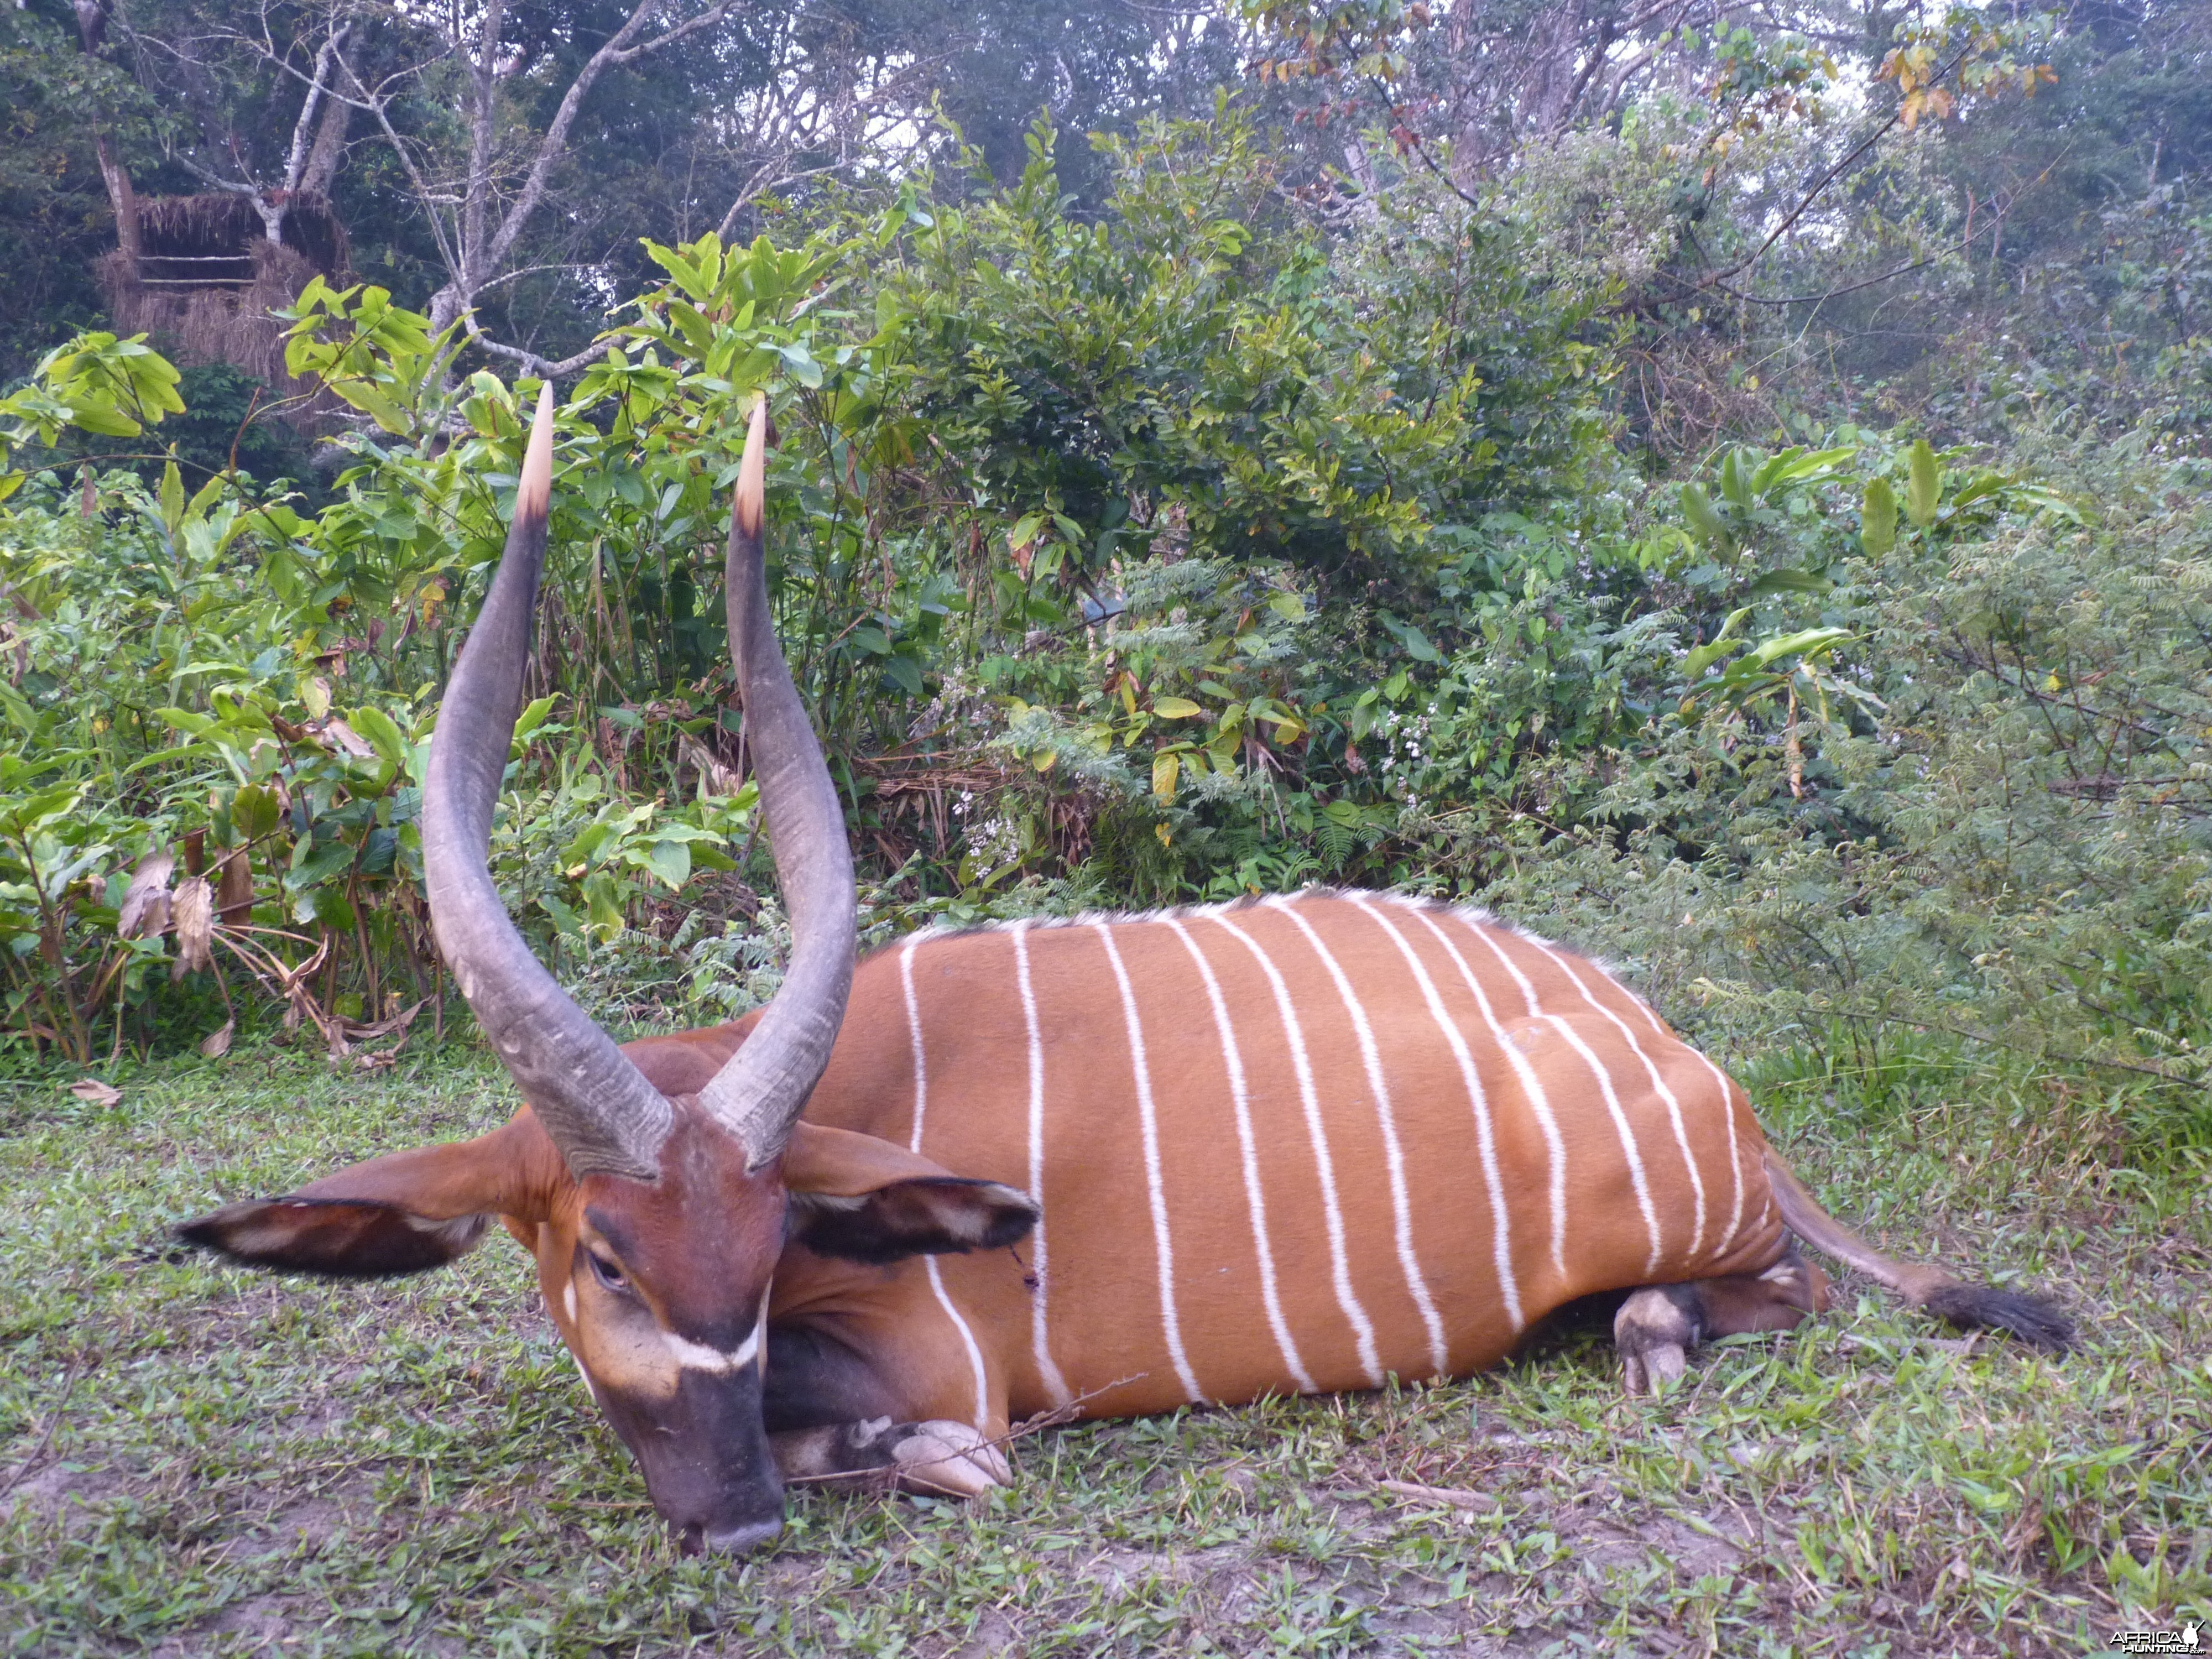 Bongo hunted in CAR